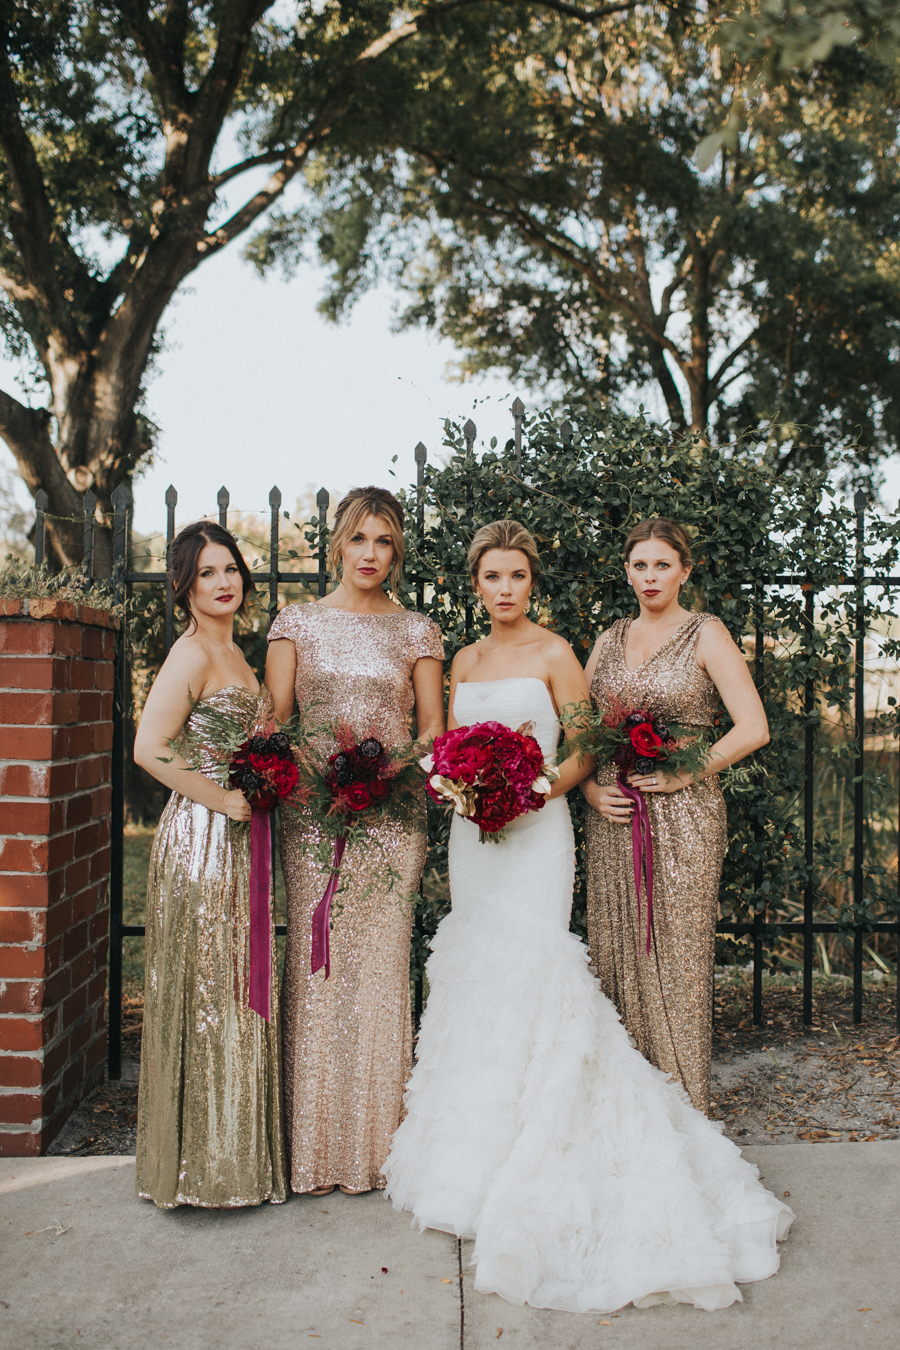 Loren and Alex Kuznetsov Gold and Burgundy wedding at Epicurean Tampa Royal Fall Wedding in Tampa Florida Inside Weddings MD Events Tampa-23.jpg